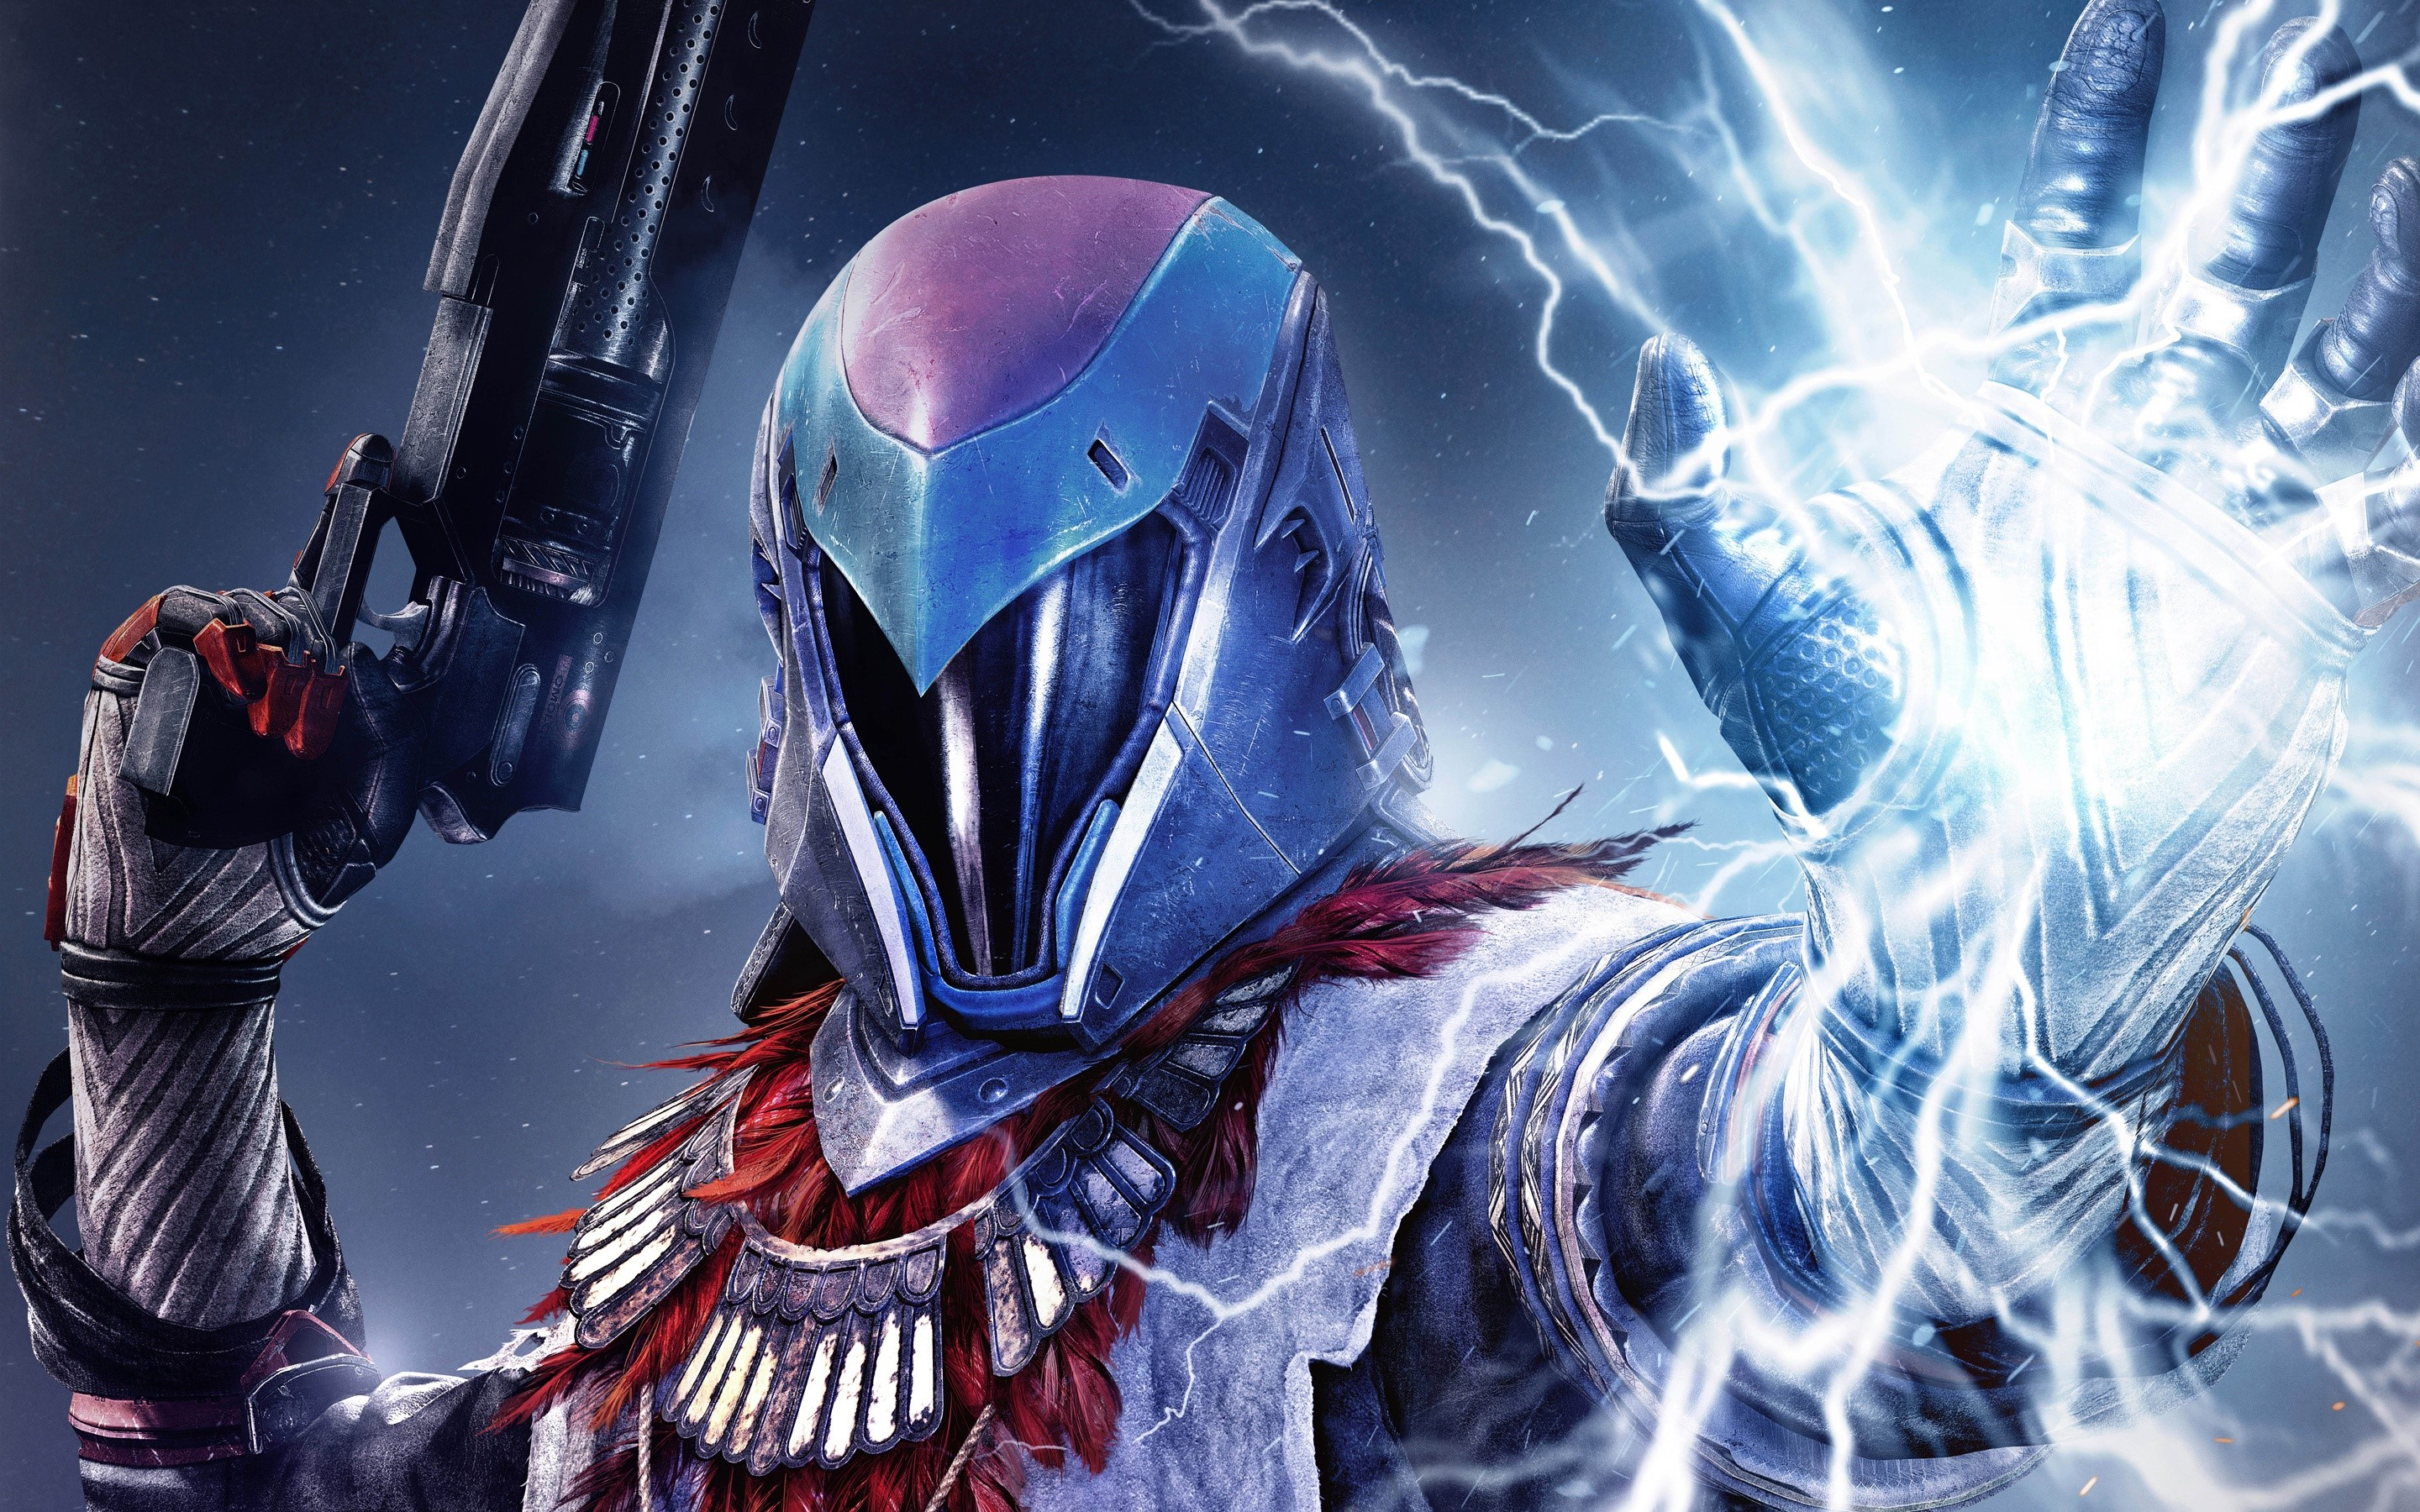 Wallpaper Warlock on Destiny The Taken King